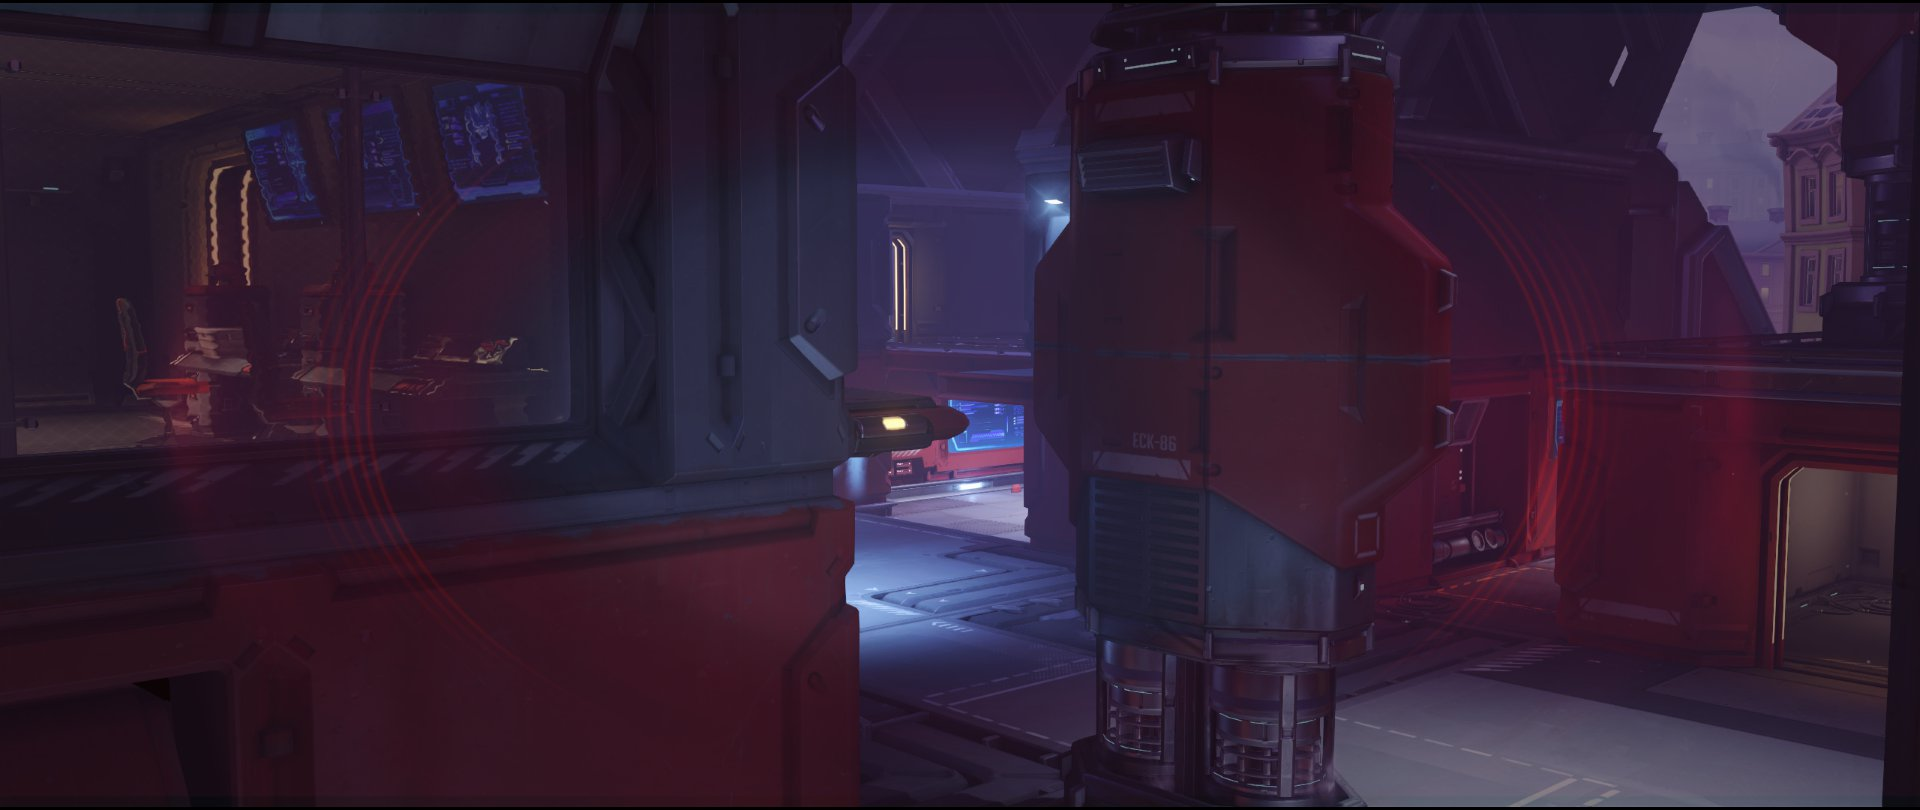 Fence side view attack sniping spot Widowmaker Volskaya Industries Overwatch.jpg